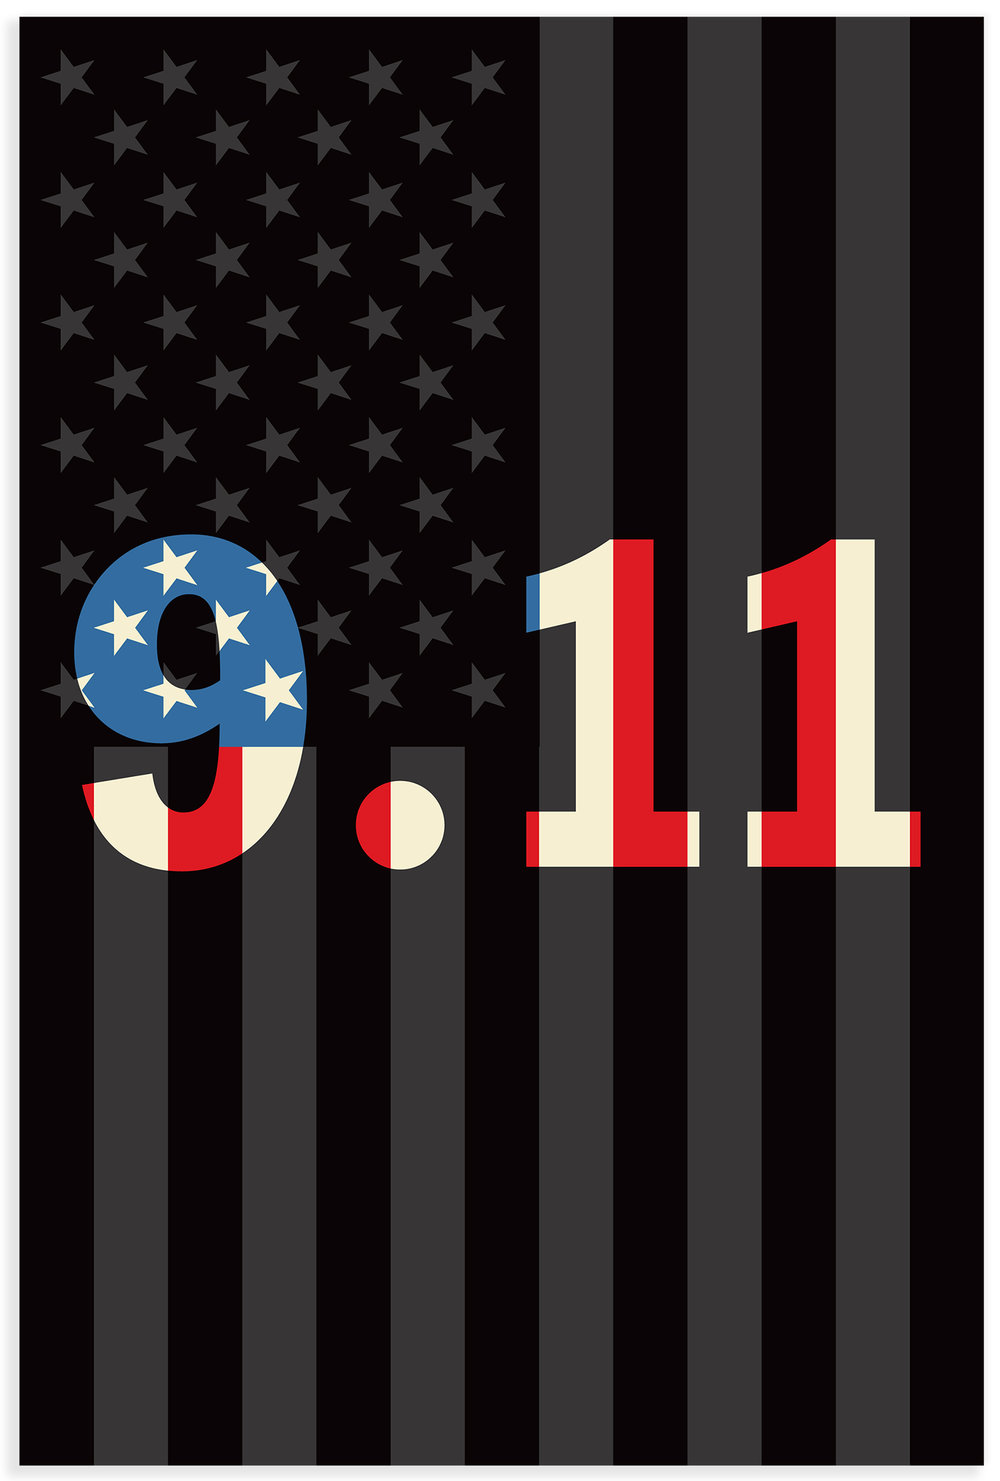 Poster produced in remembrance of those who perished on 9/11.